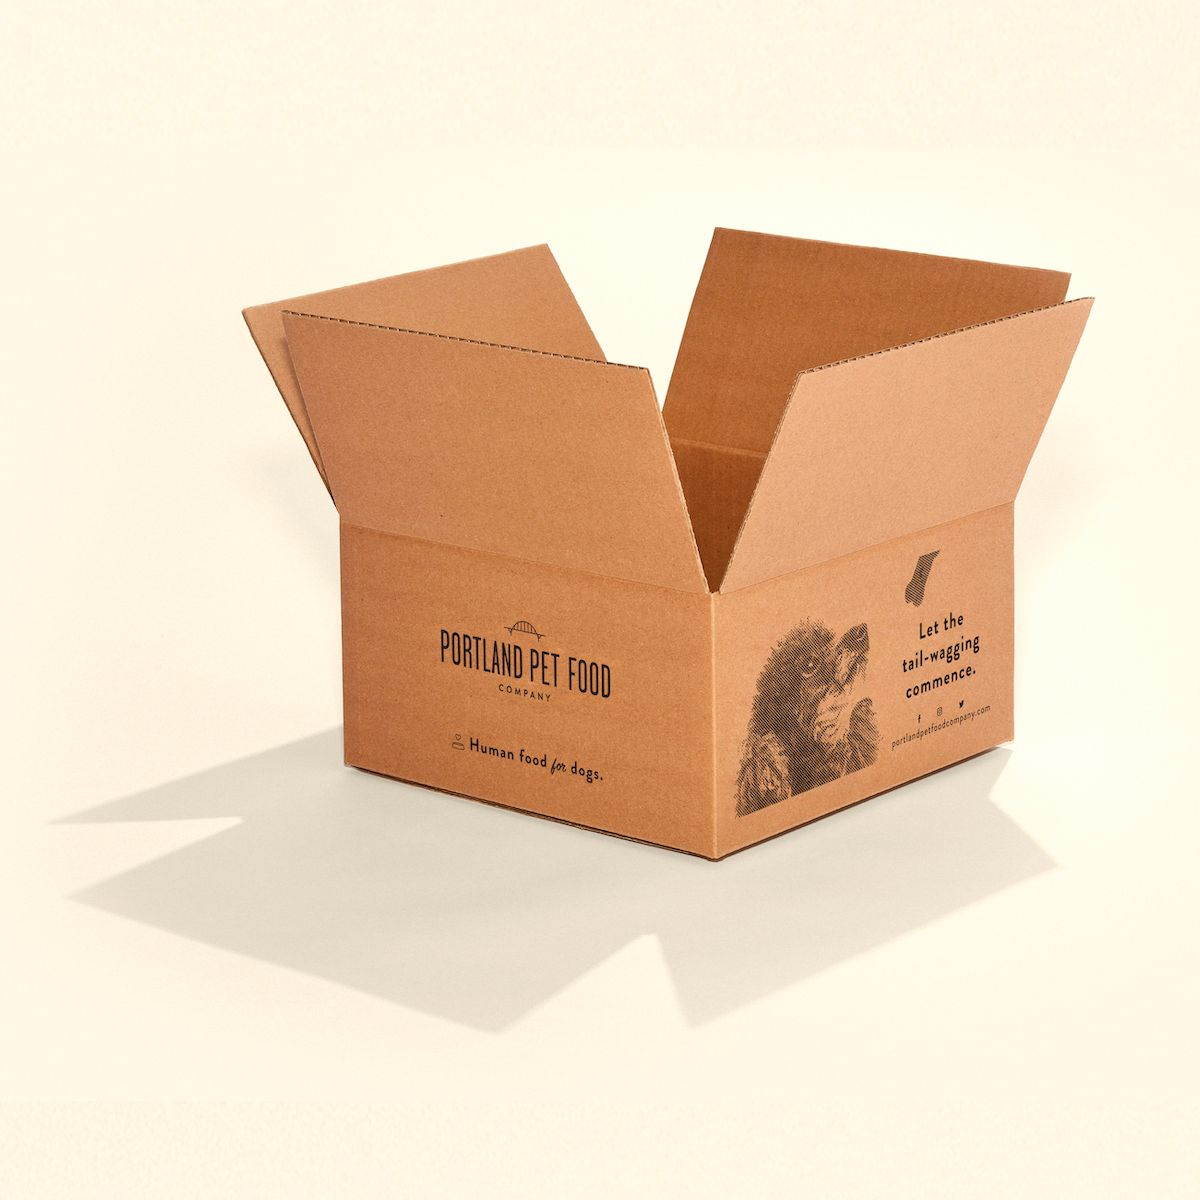 Corrugated printed shipping boxes